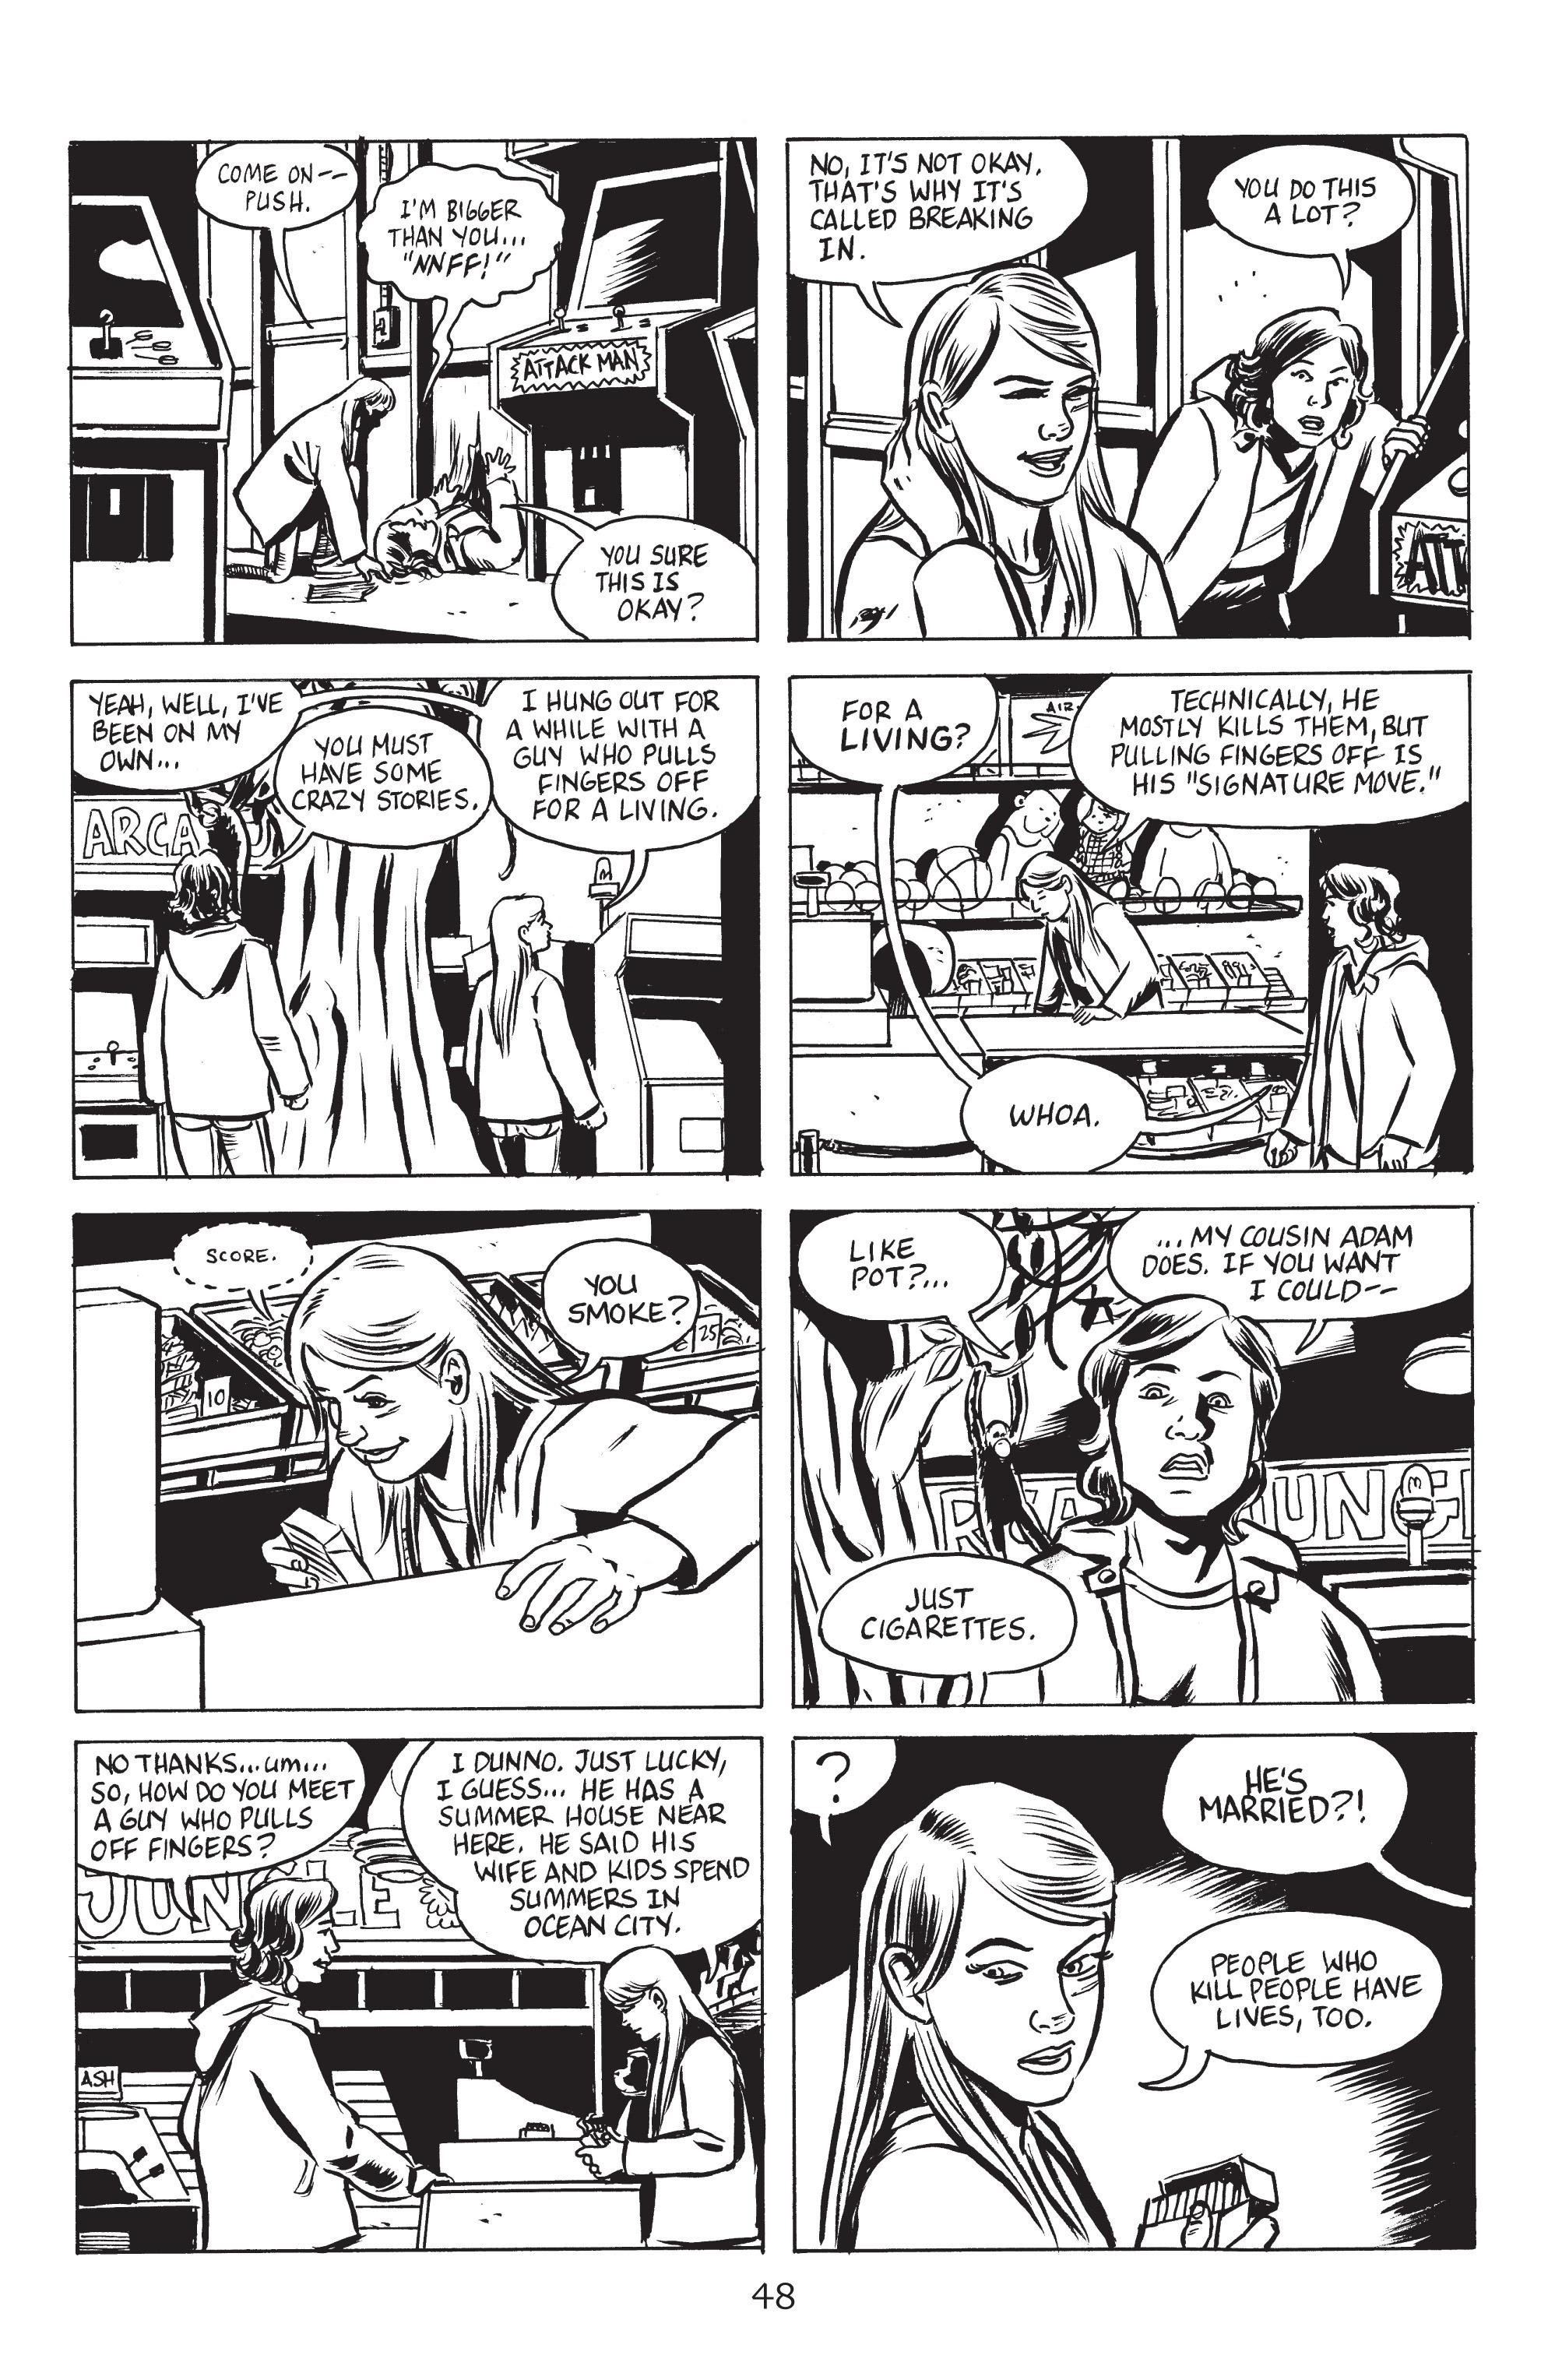 Stray Bullets - Killers review